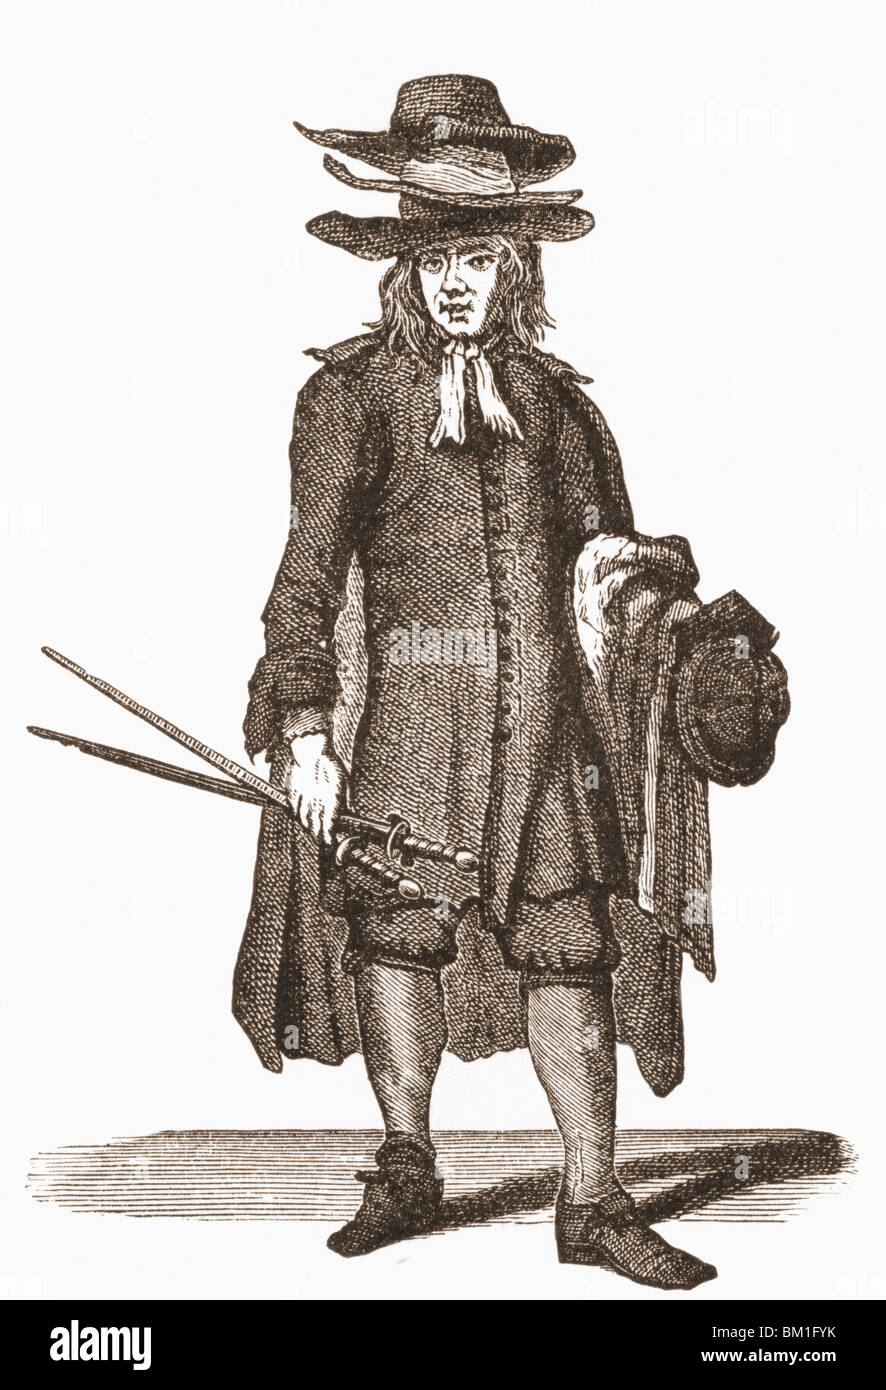 18th century street trader selling old cloaks, suits,coats,hats ...